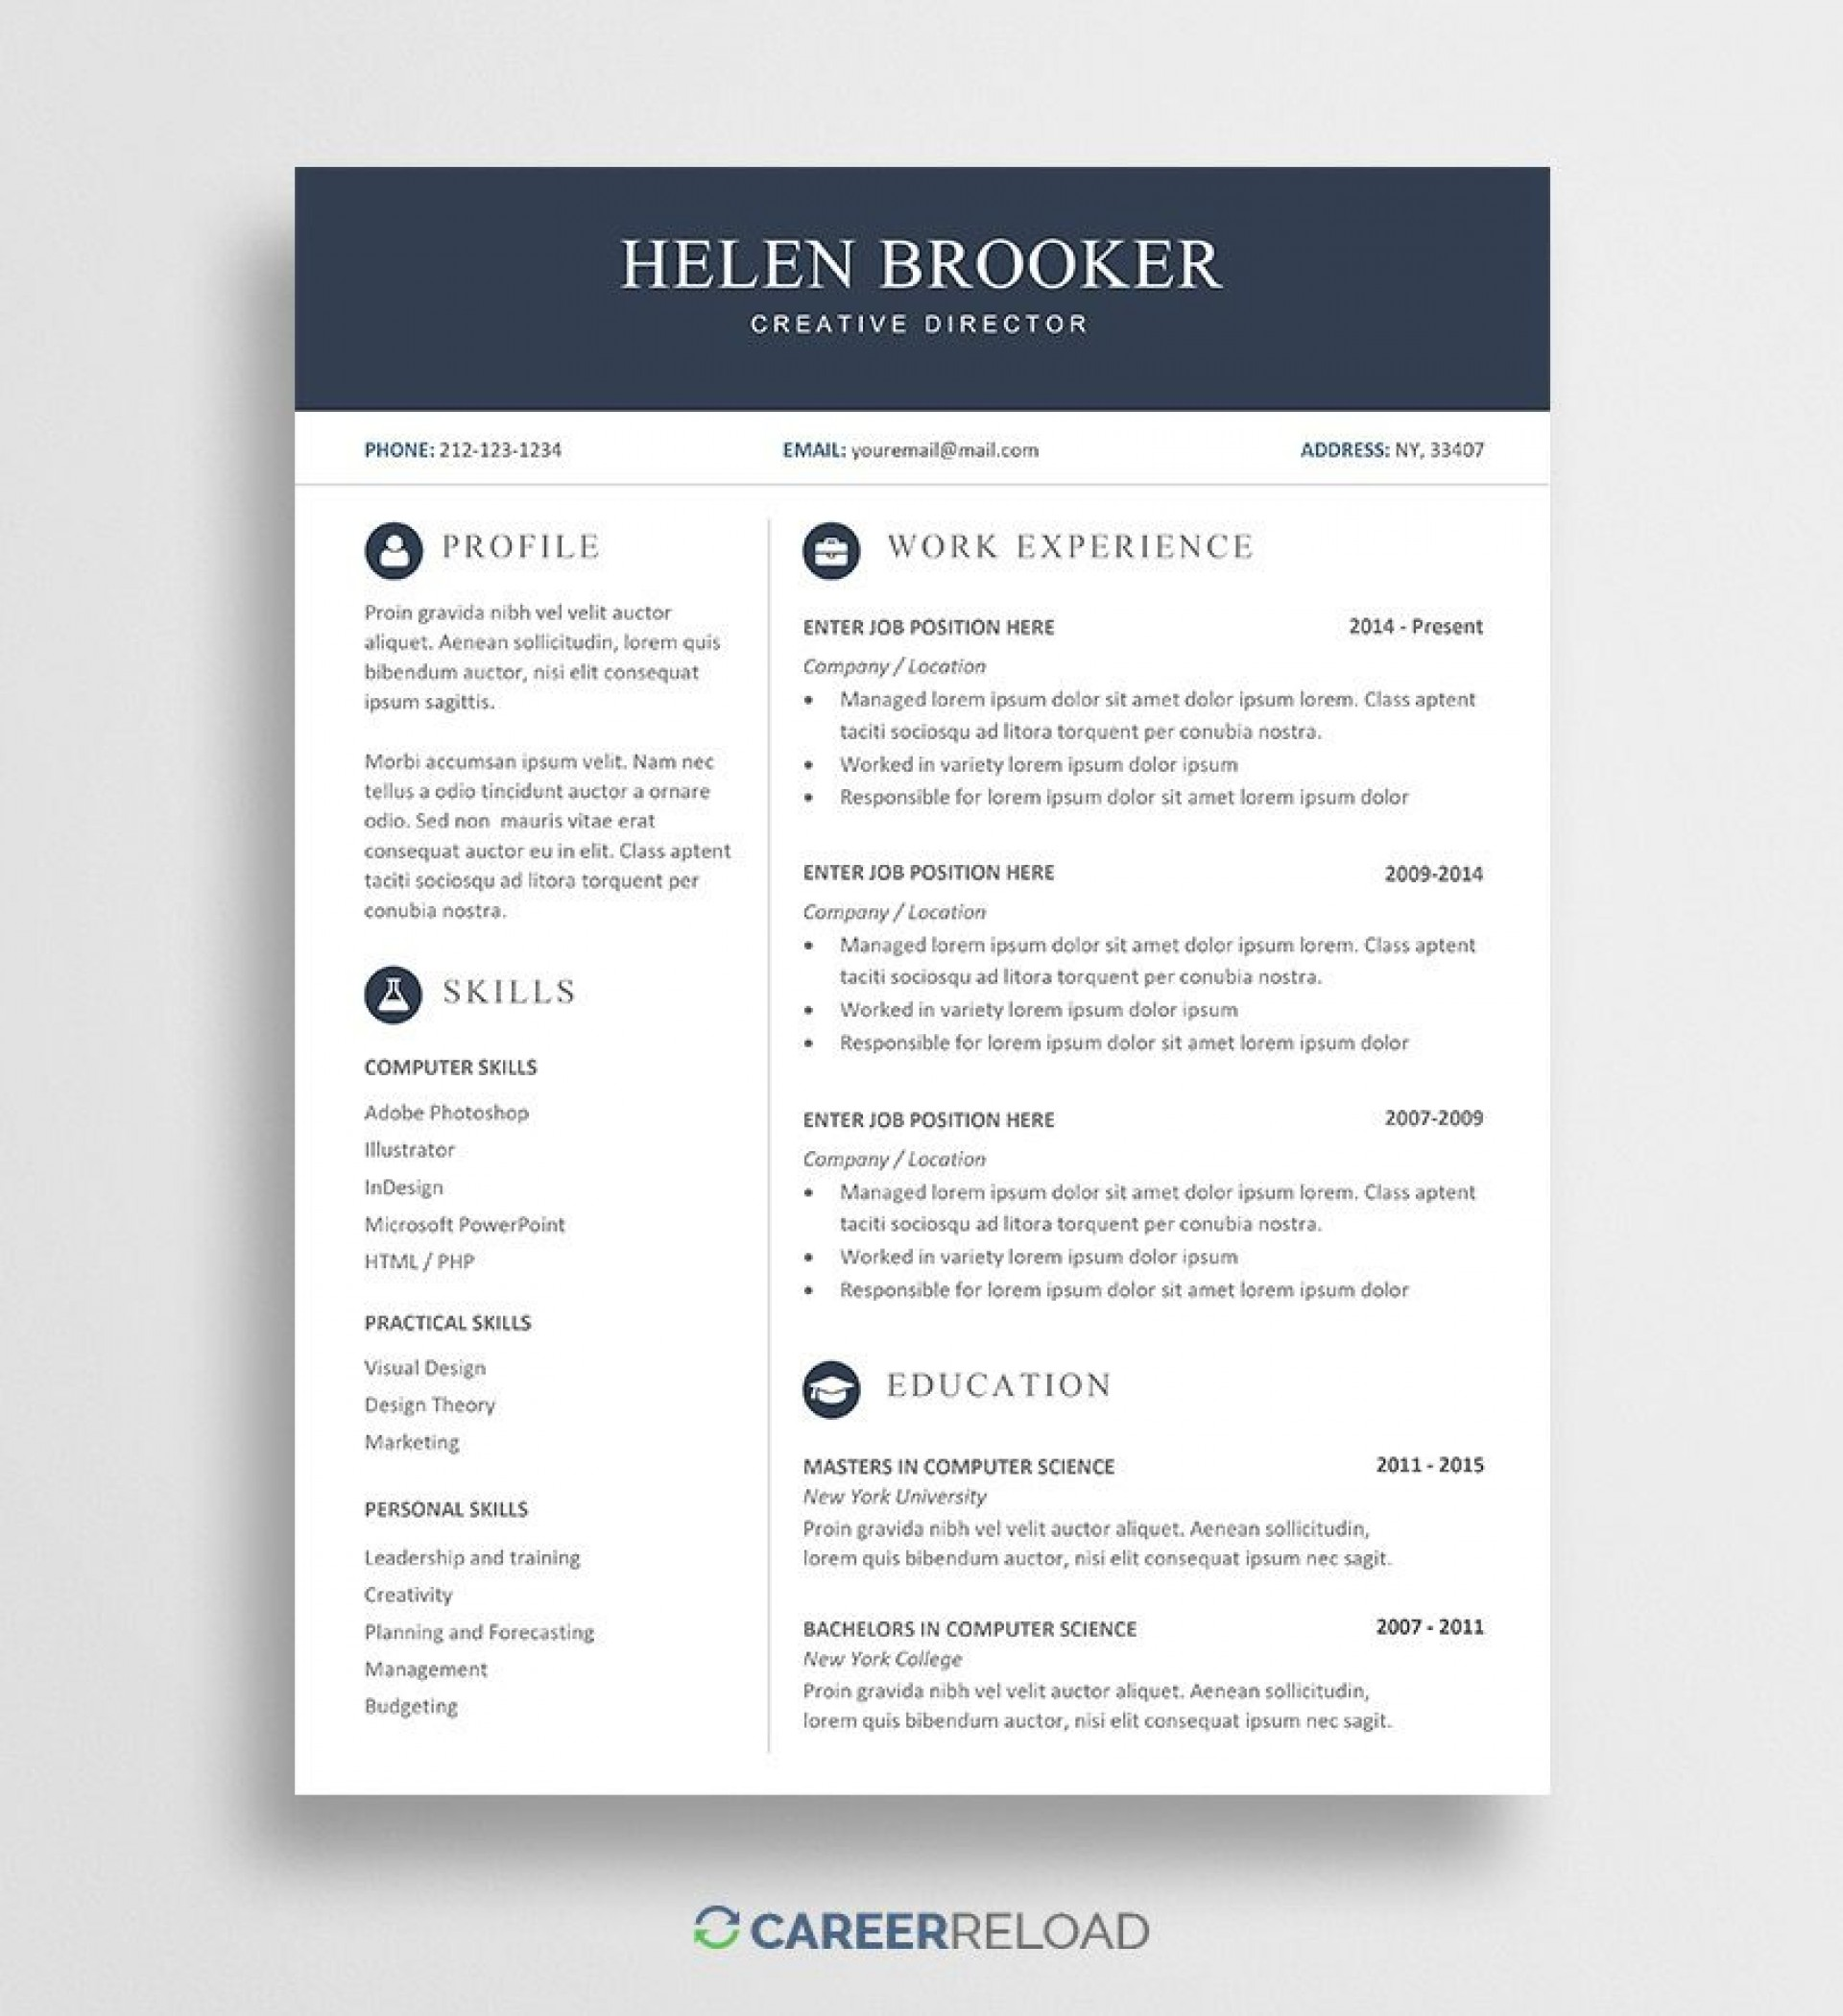 003 Unusual Free Resume Template To Download Example  Professional Format In M Word 2007 For Civil Engineer1920